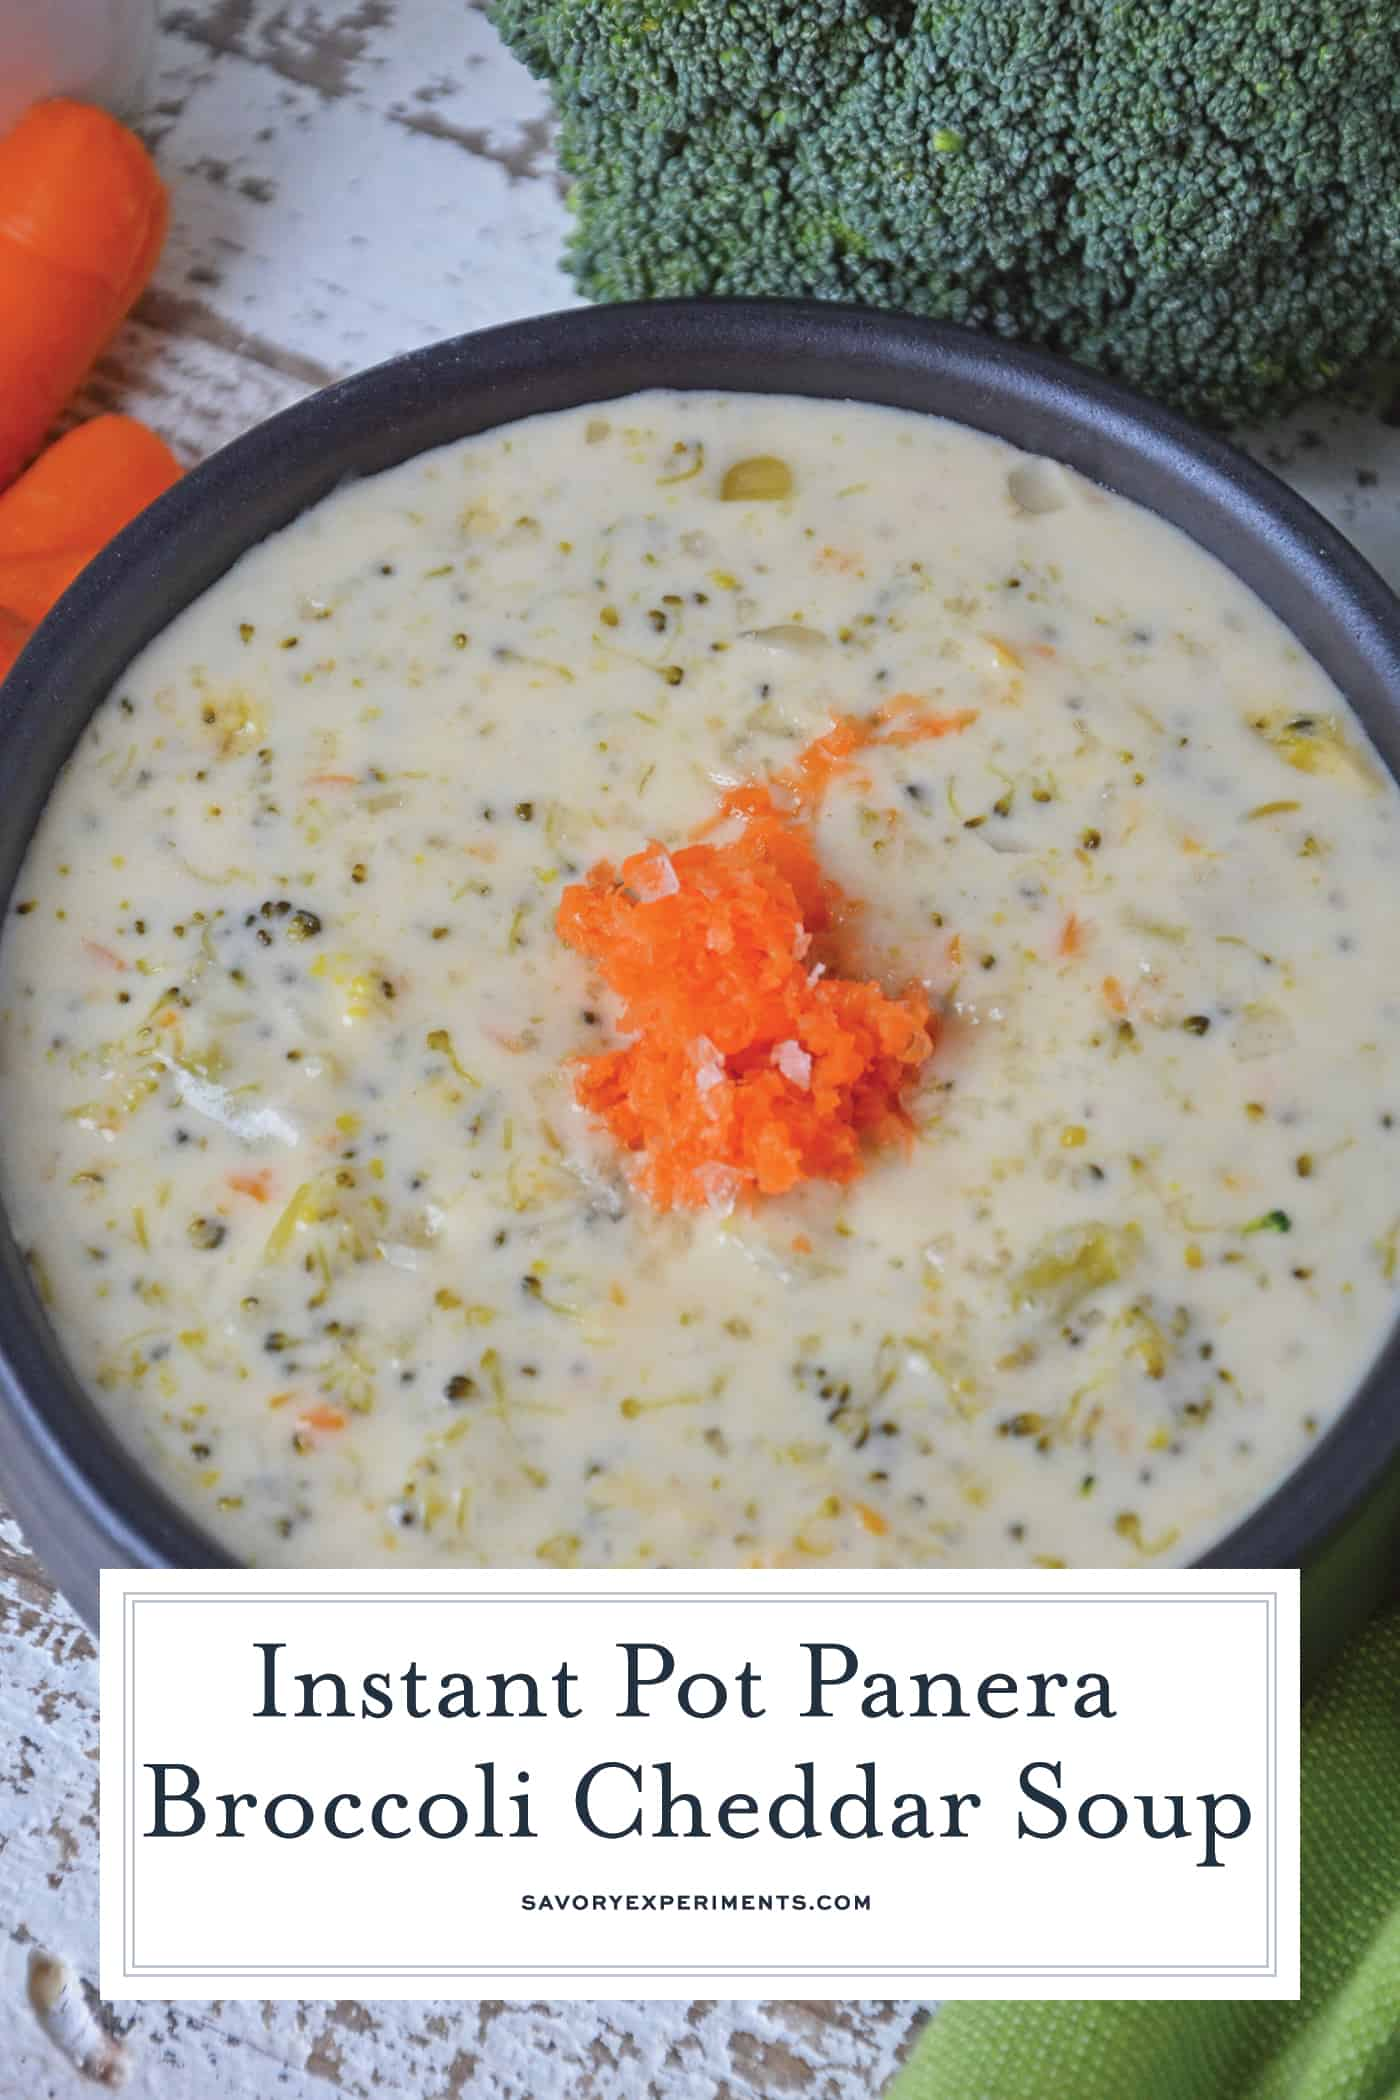 An easy instant pot recipe that tastes even better than the original Panera Broccoli Cheddar Soup. Ready in just 30 minutes! #panerasoup #instantpotsouprecipes #broccolicheddarsoup #easyinstantpotrecipes www.savoryexperiments.com